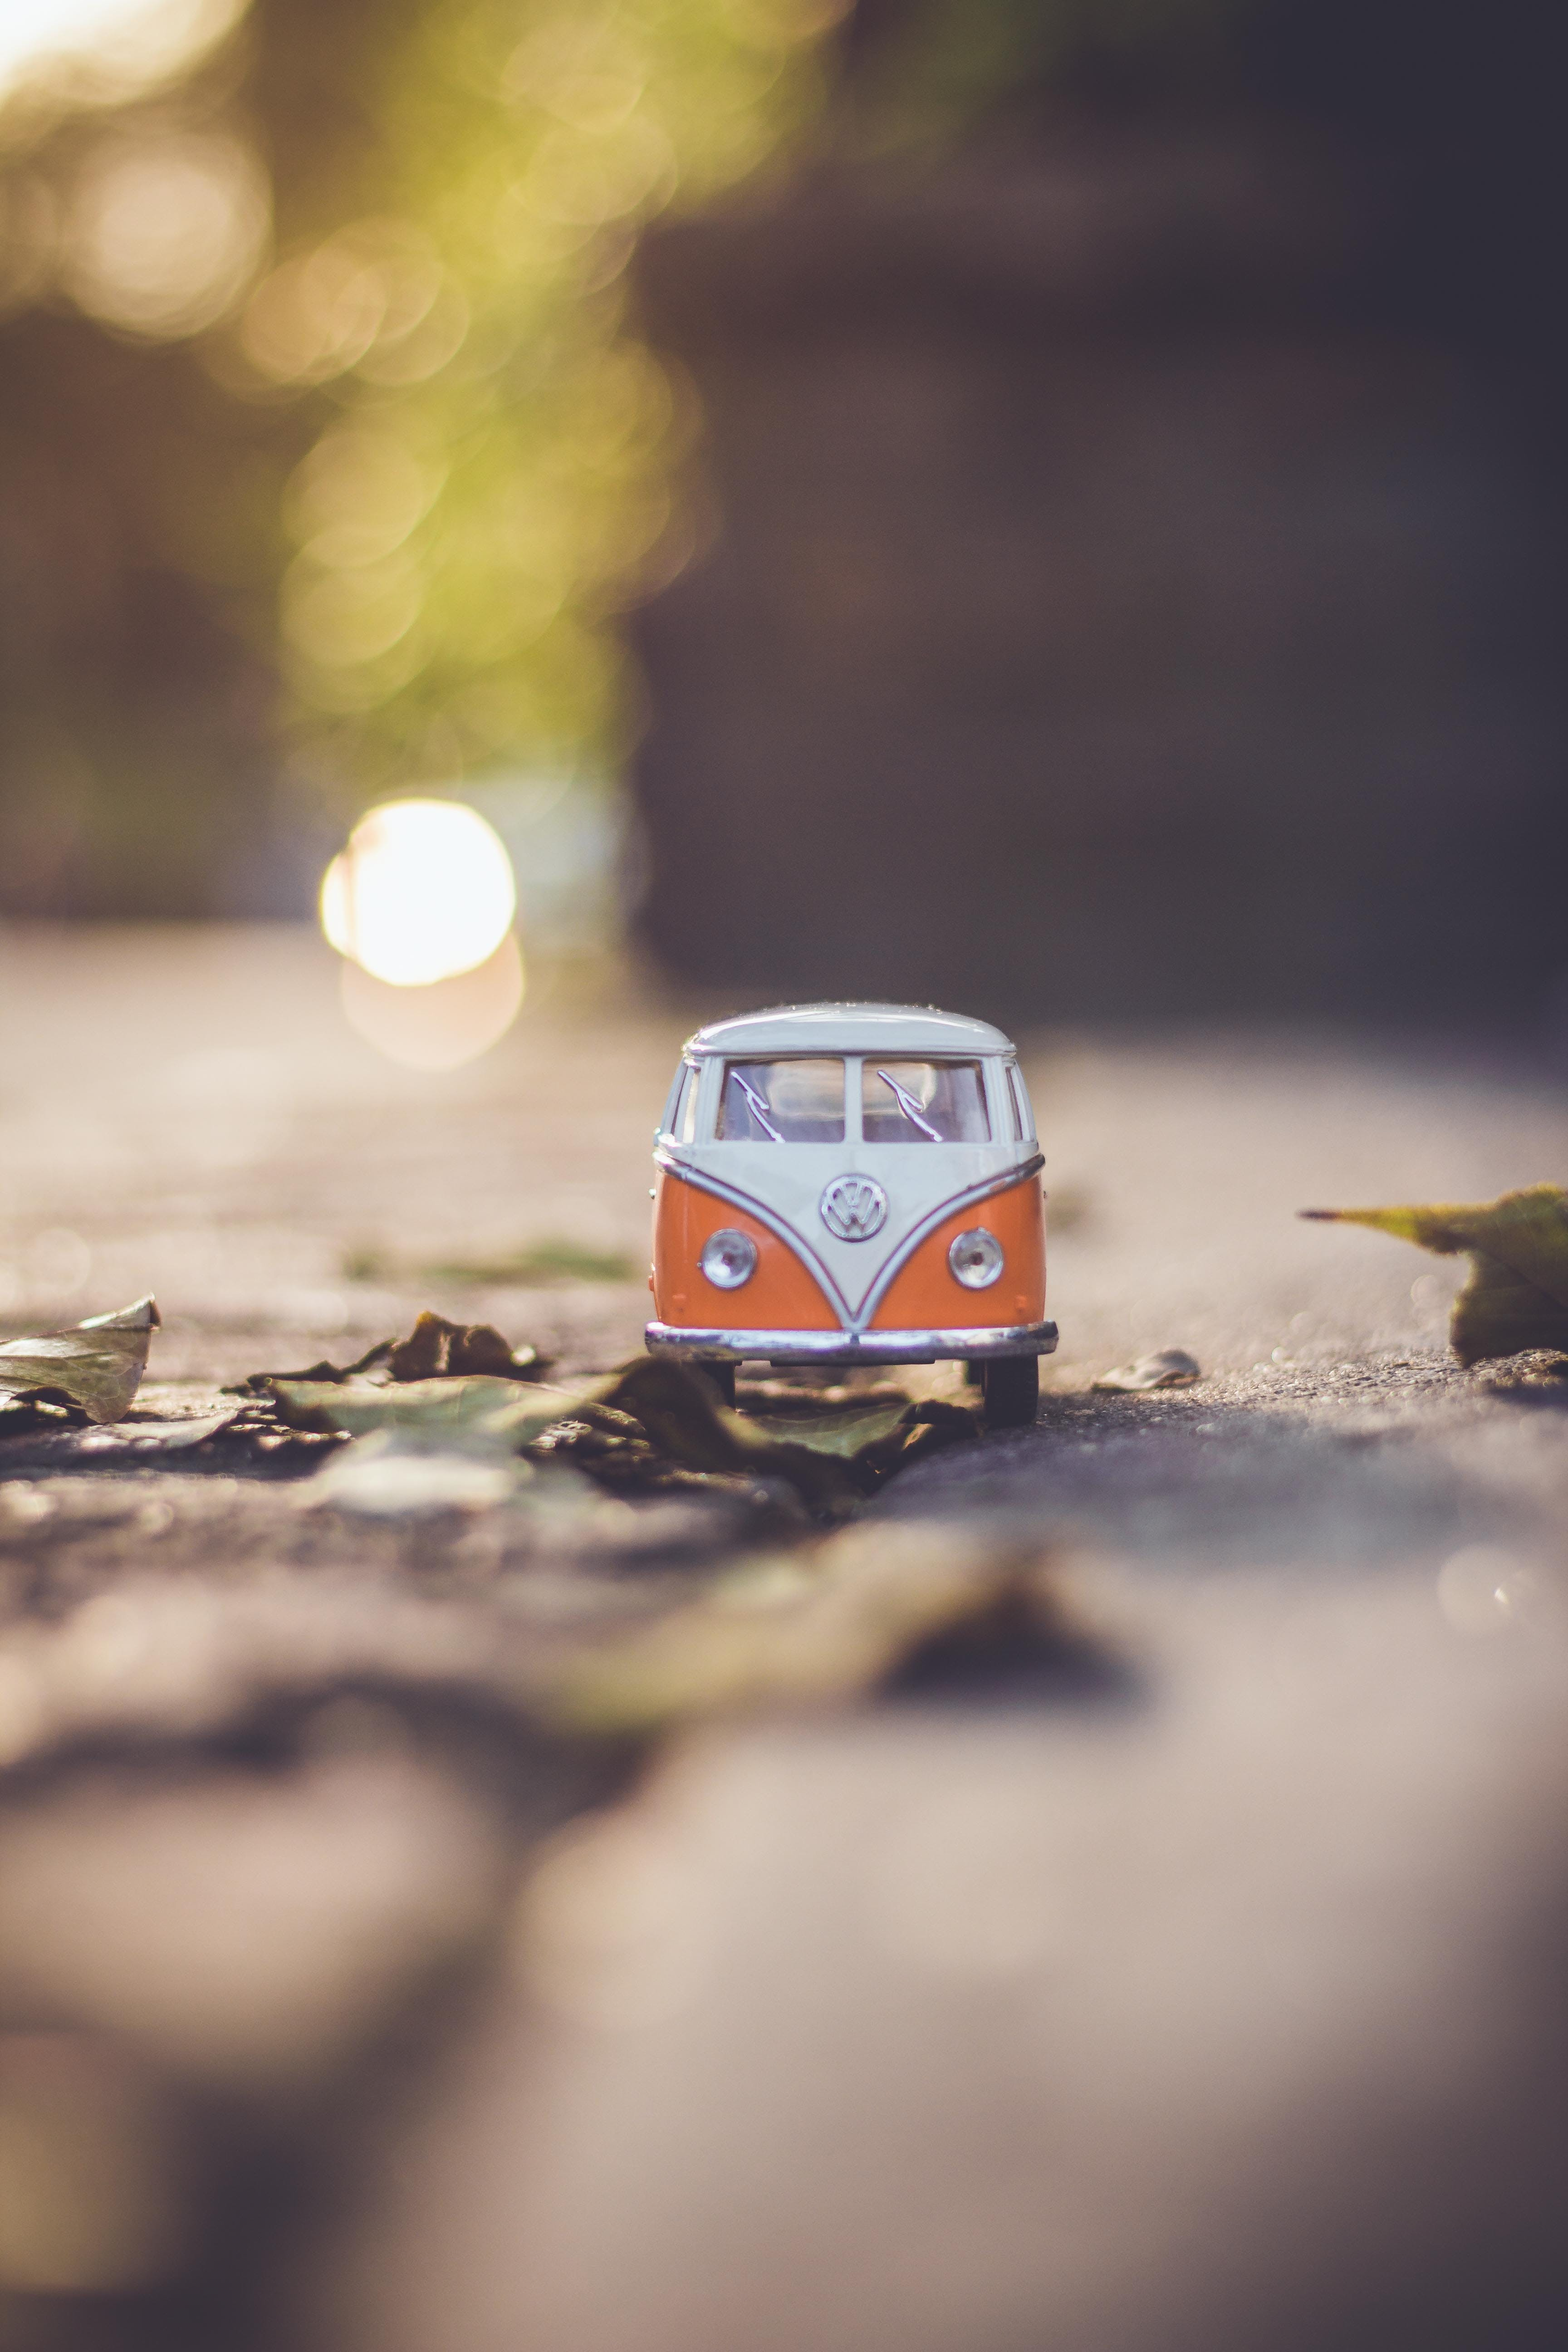 Selective Focus Photography of White Volkswagen T2 Van Model on Ground